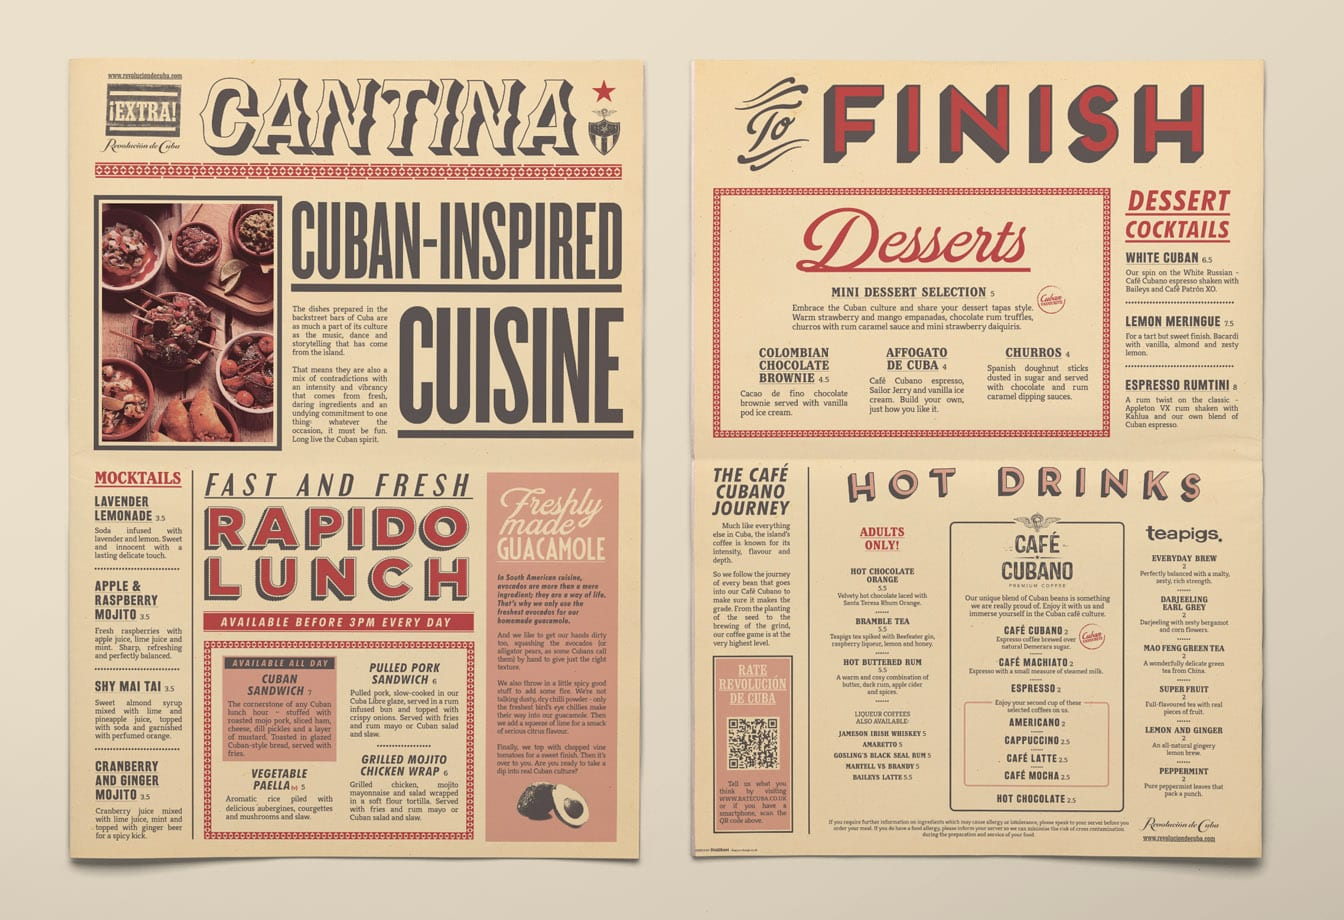 rev de cuba food menu covers